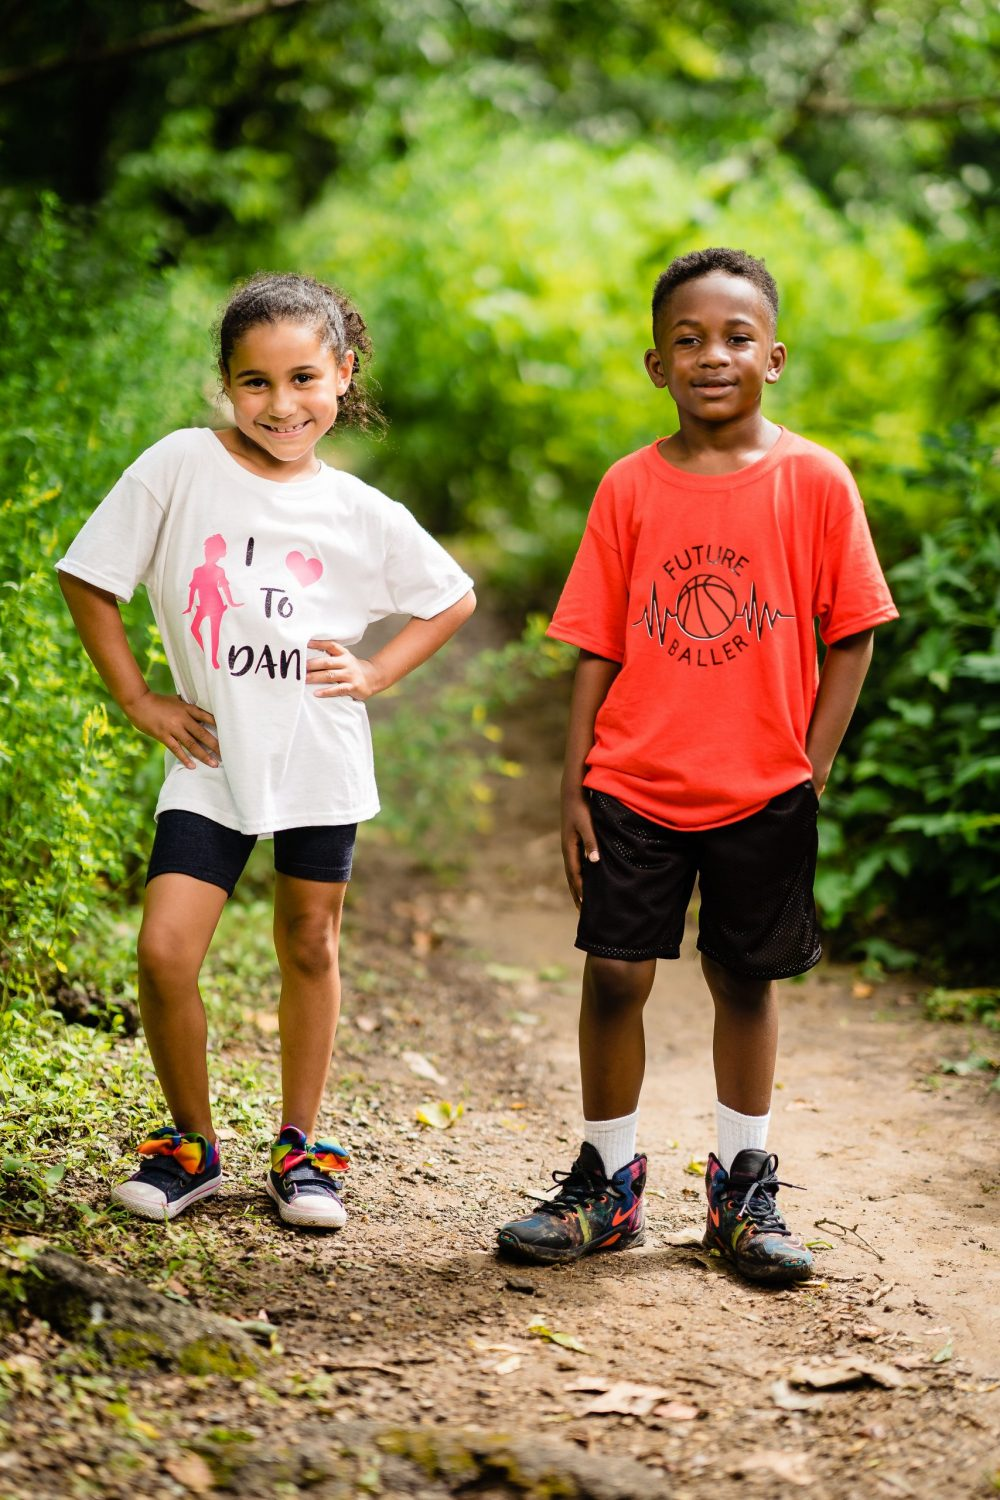 young boy and girl modeling clothing